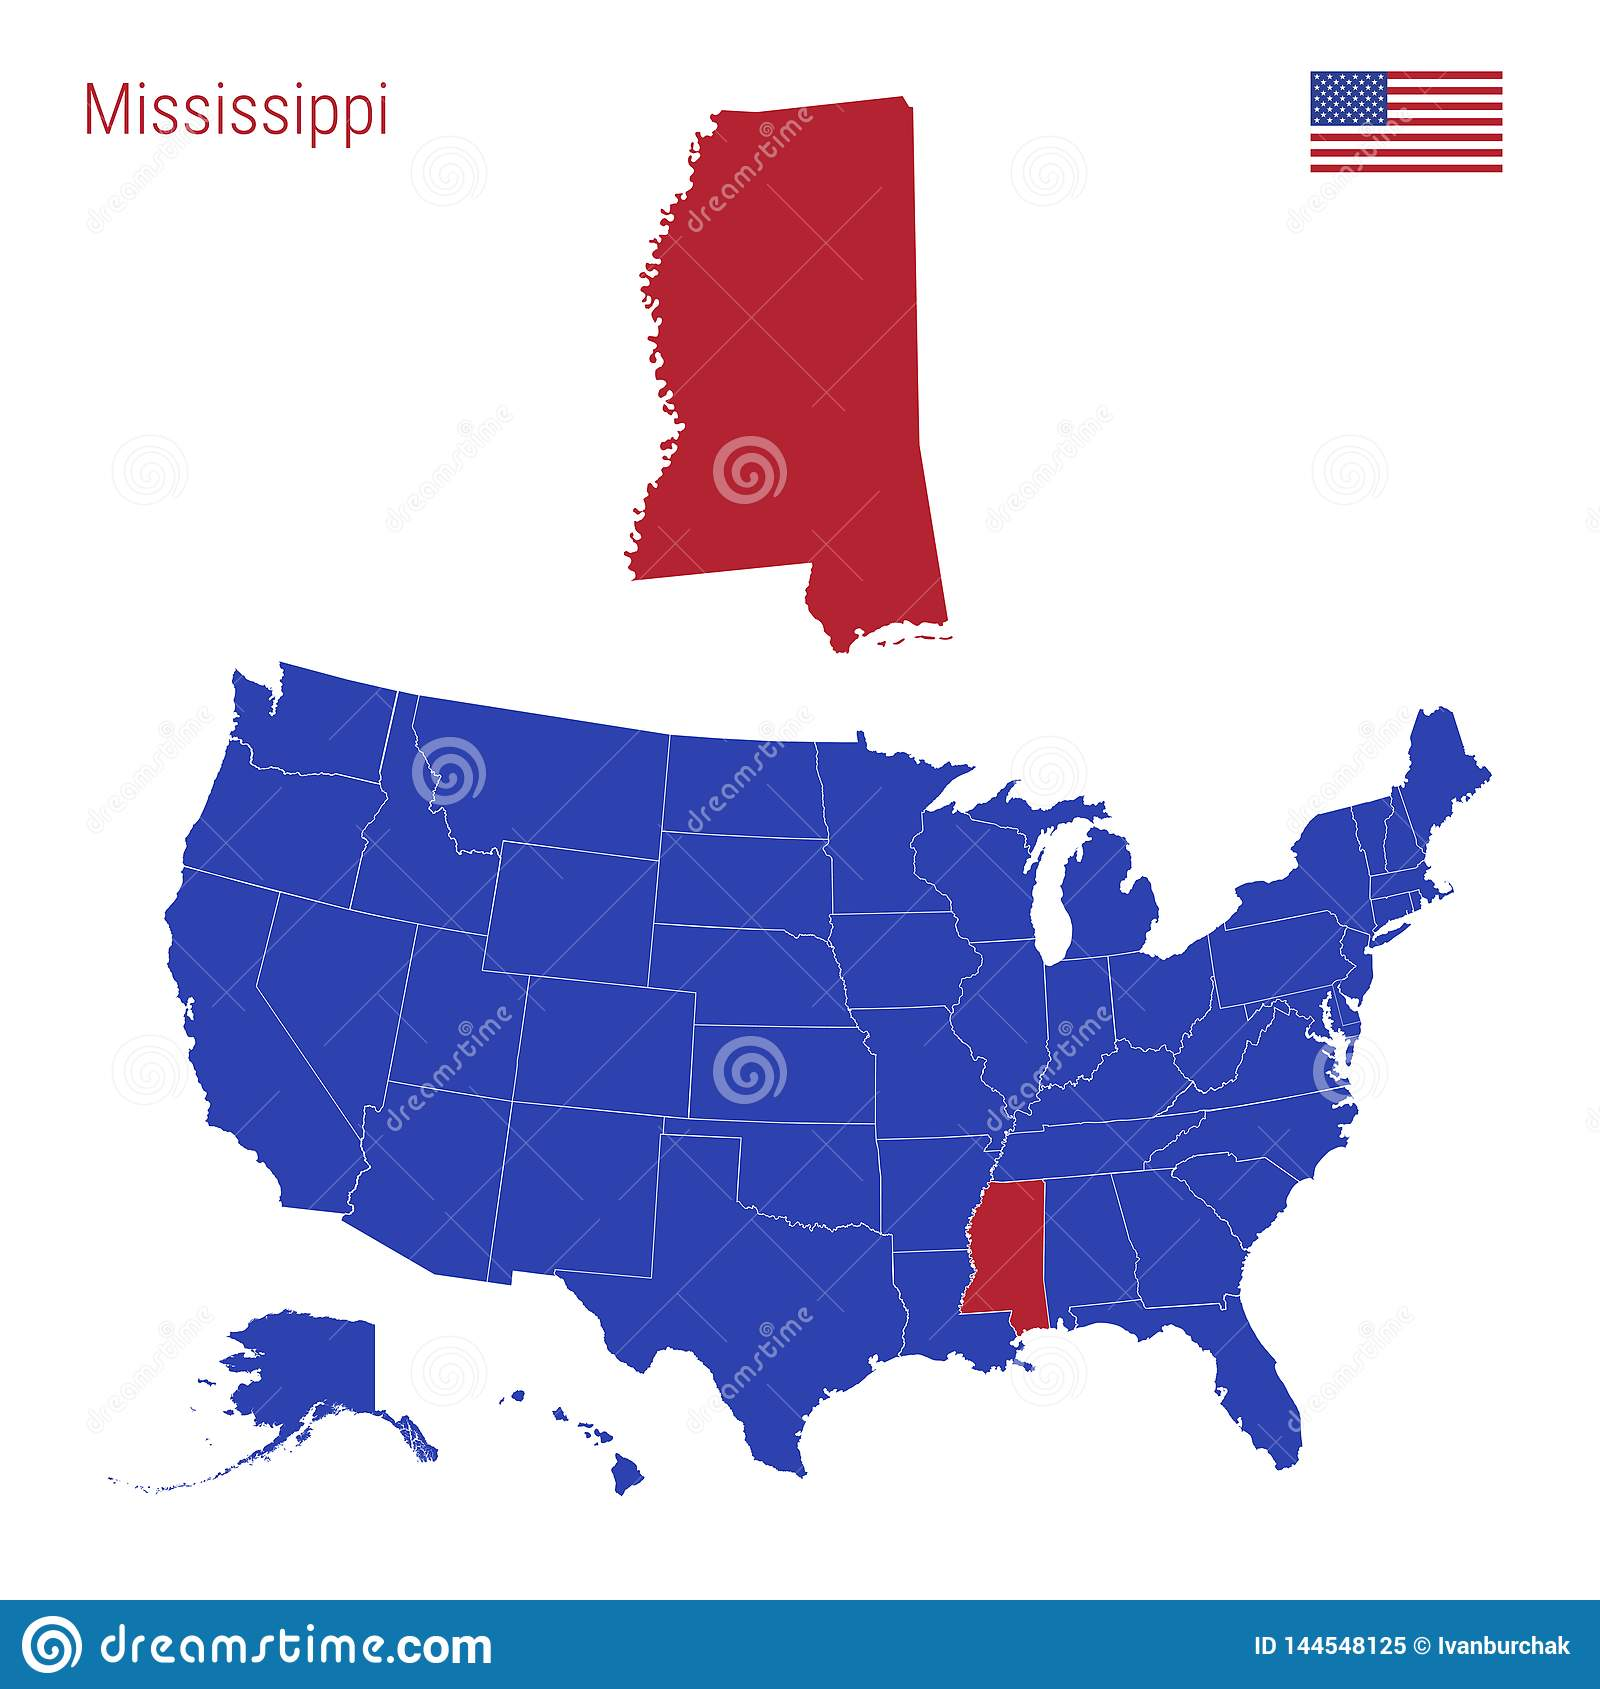 The State Of Mississippi Is Highlighted In Red. Vector Map ... on weather map mississippi, map of romania, map of japan, map of united arab emirates, map of singapore, us map mississippi, map of netherlands, map of india, map of us territories, map of ireland, map of united kingdom, state flags mississippi, map of australia, road maps mississippi, google maps mississippi, united states map mississippi, map of finland, map of austria, map of thailand, map of denmark,